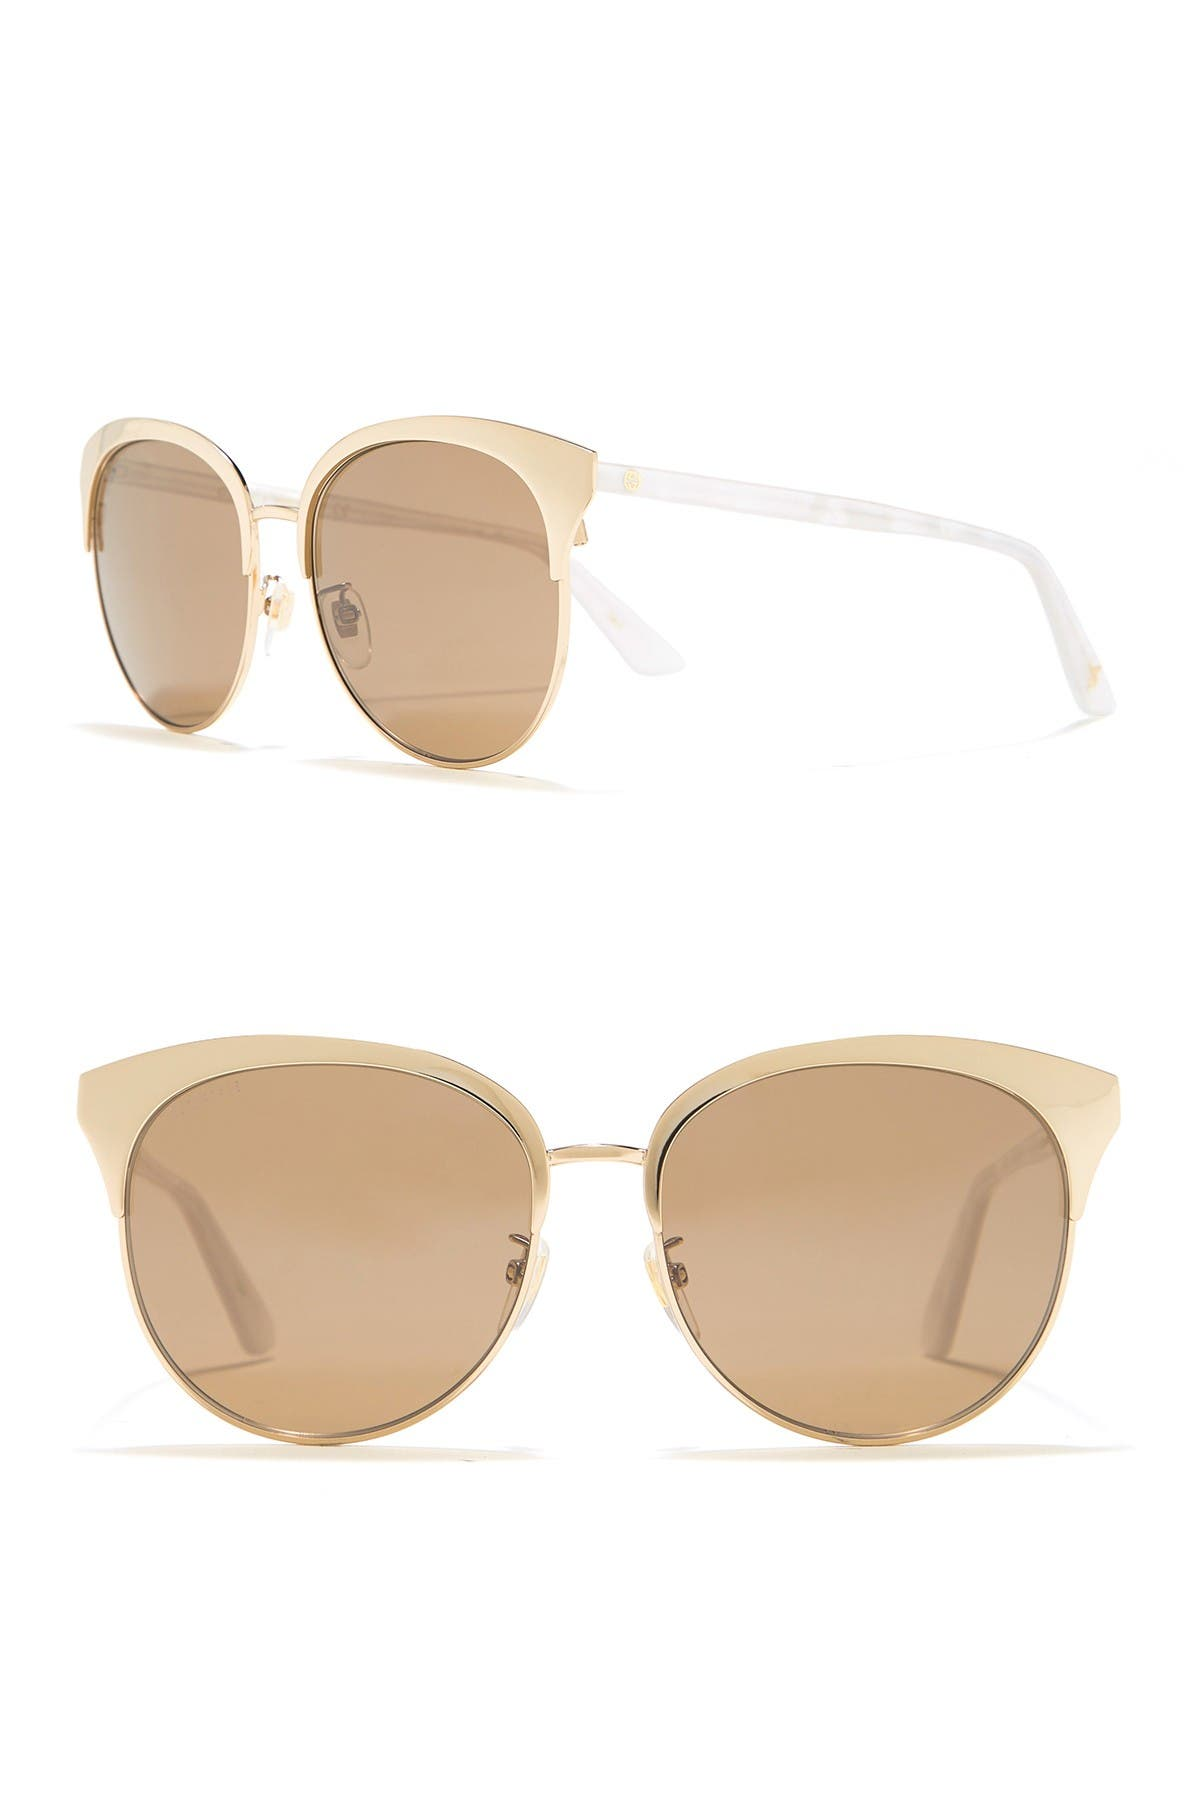 Image of GUCCI 57mmm Clubmaster Sunglasses